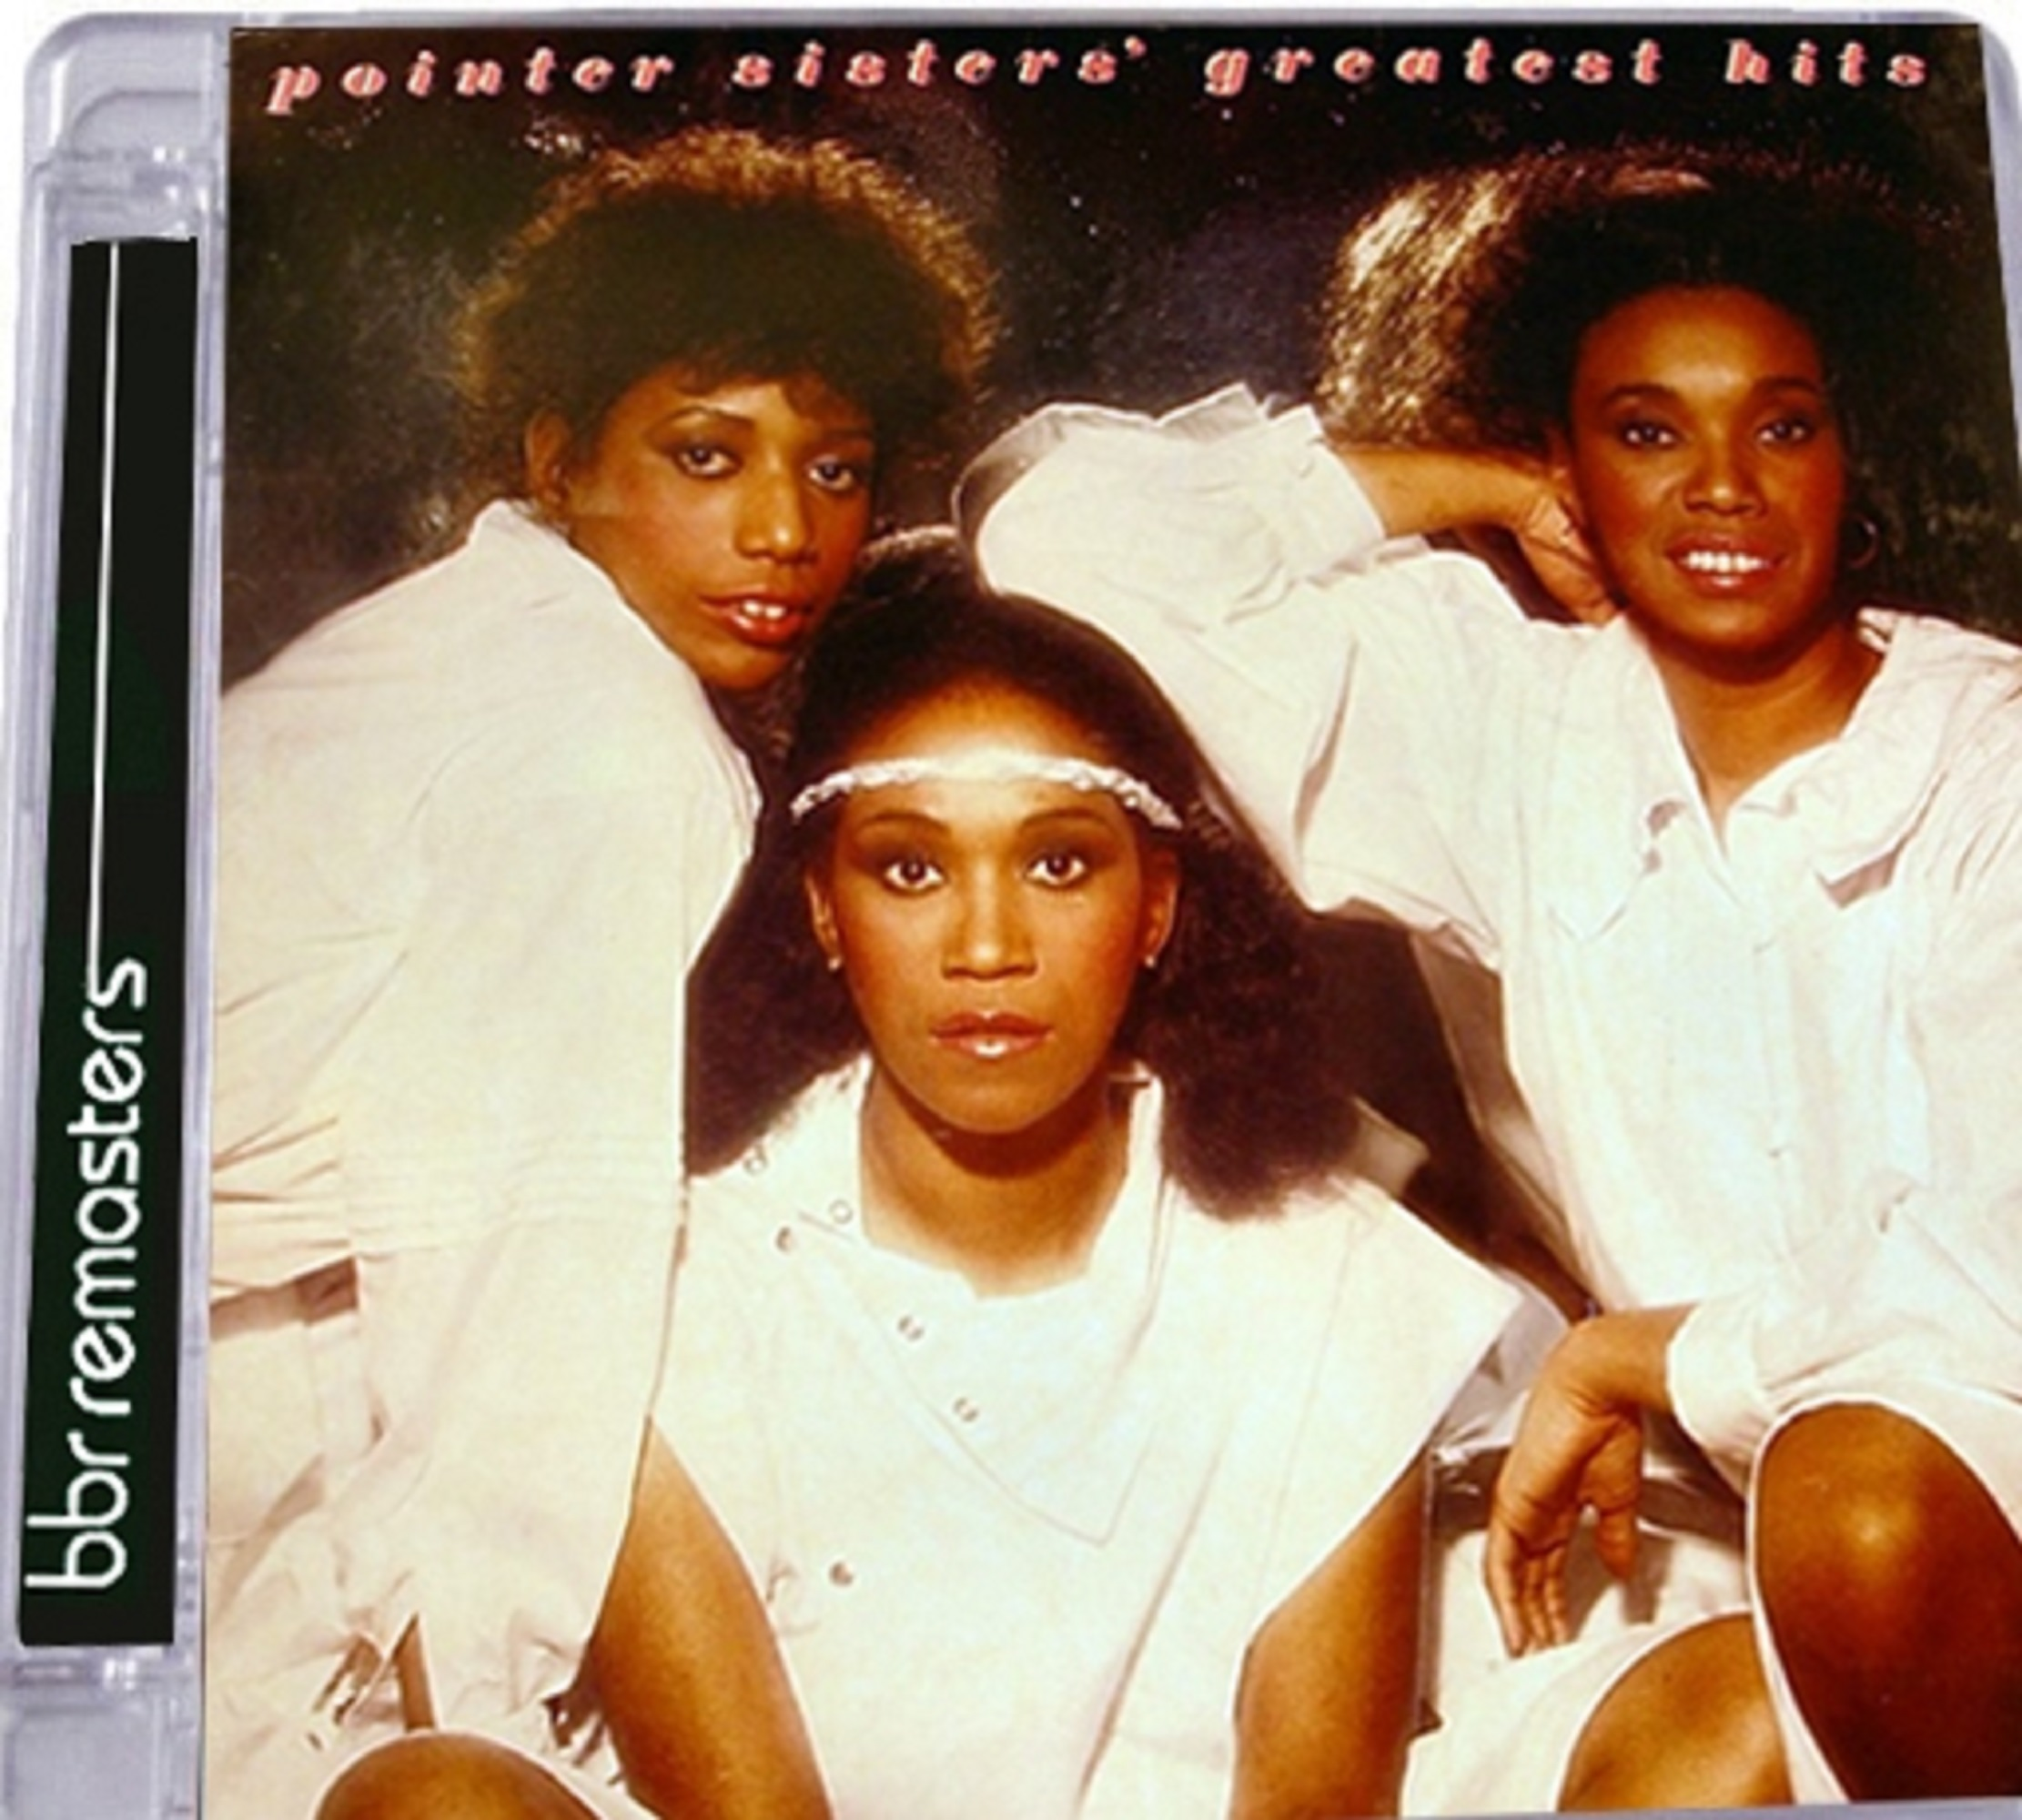 Pointer Sisters' Greatest Hits: Expanded Edition